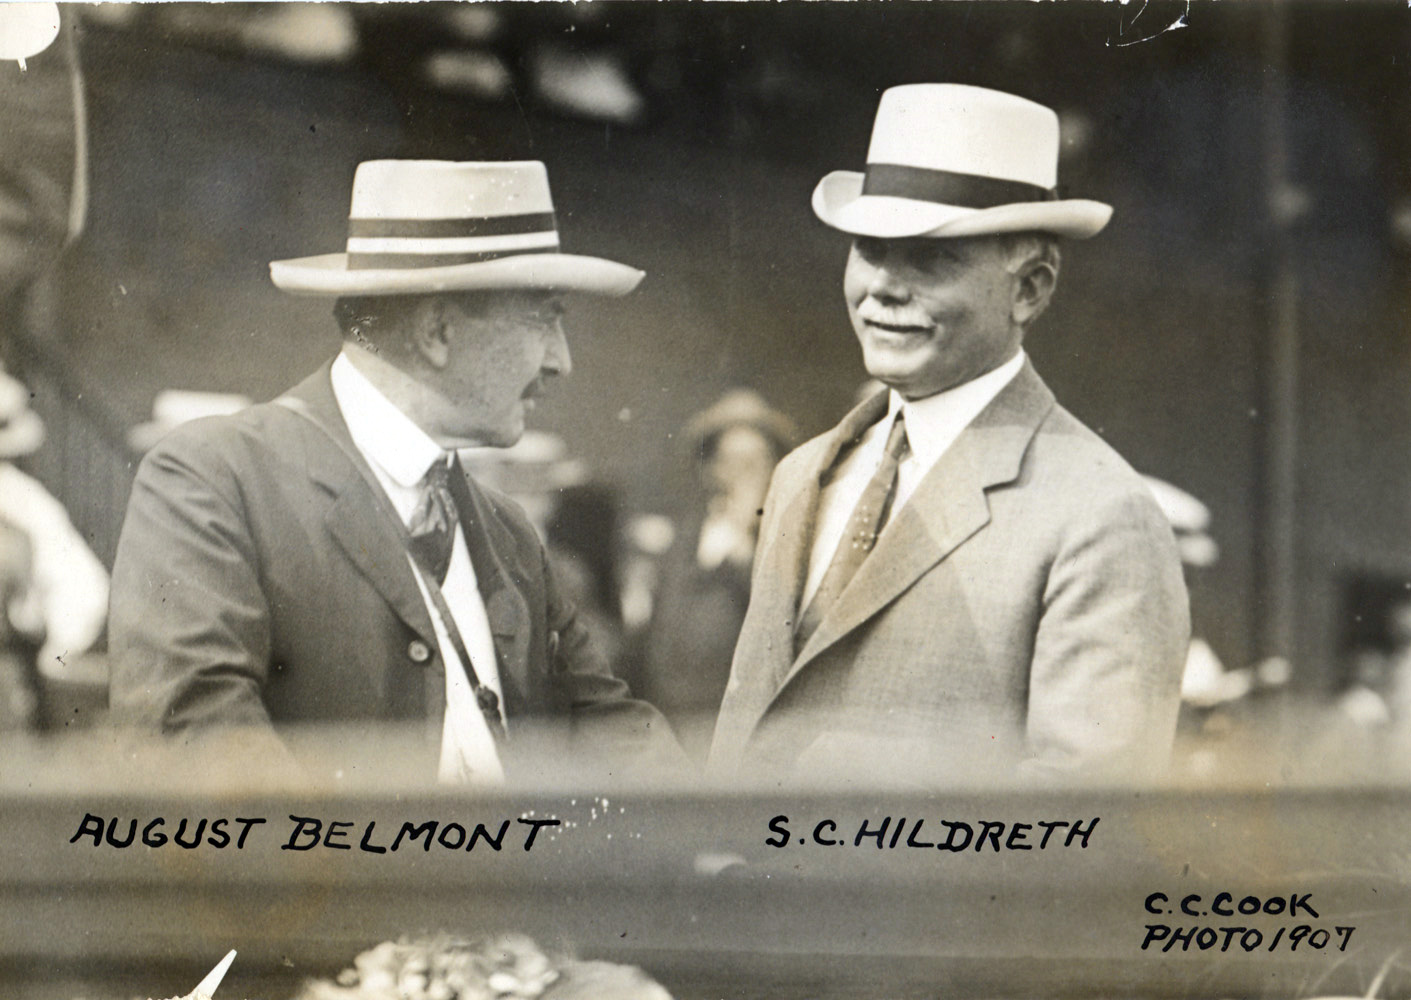 August Belmont and trainer Sam Hildreth in 1907 (C. C. Cook/Museum Collection)